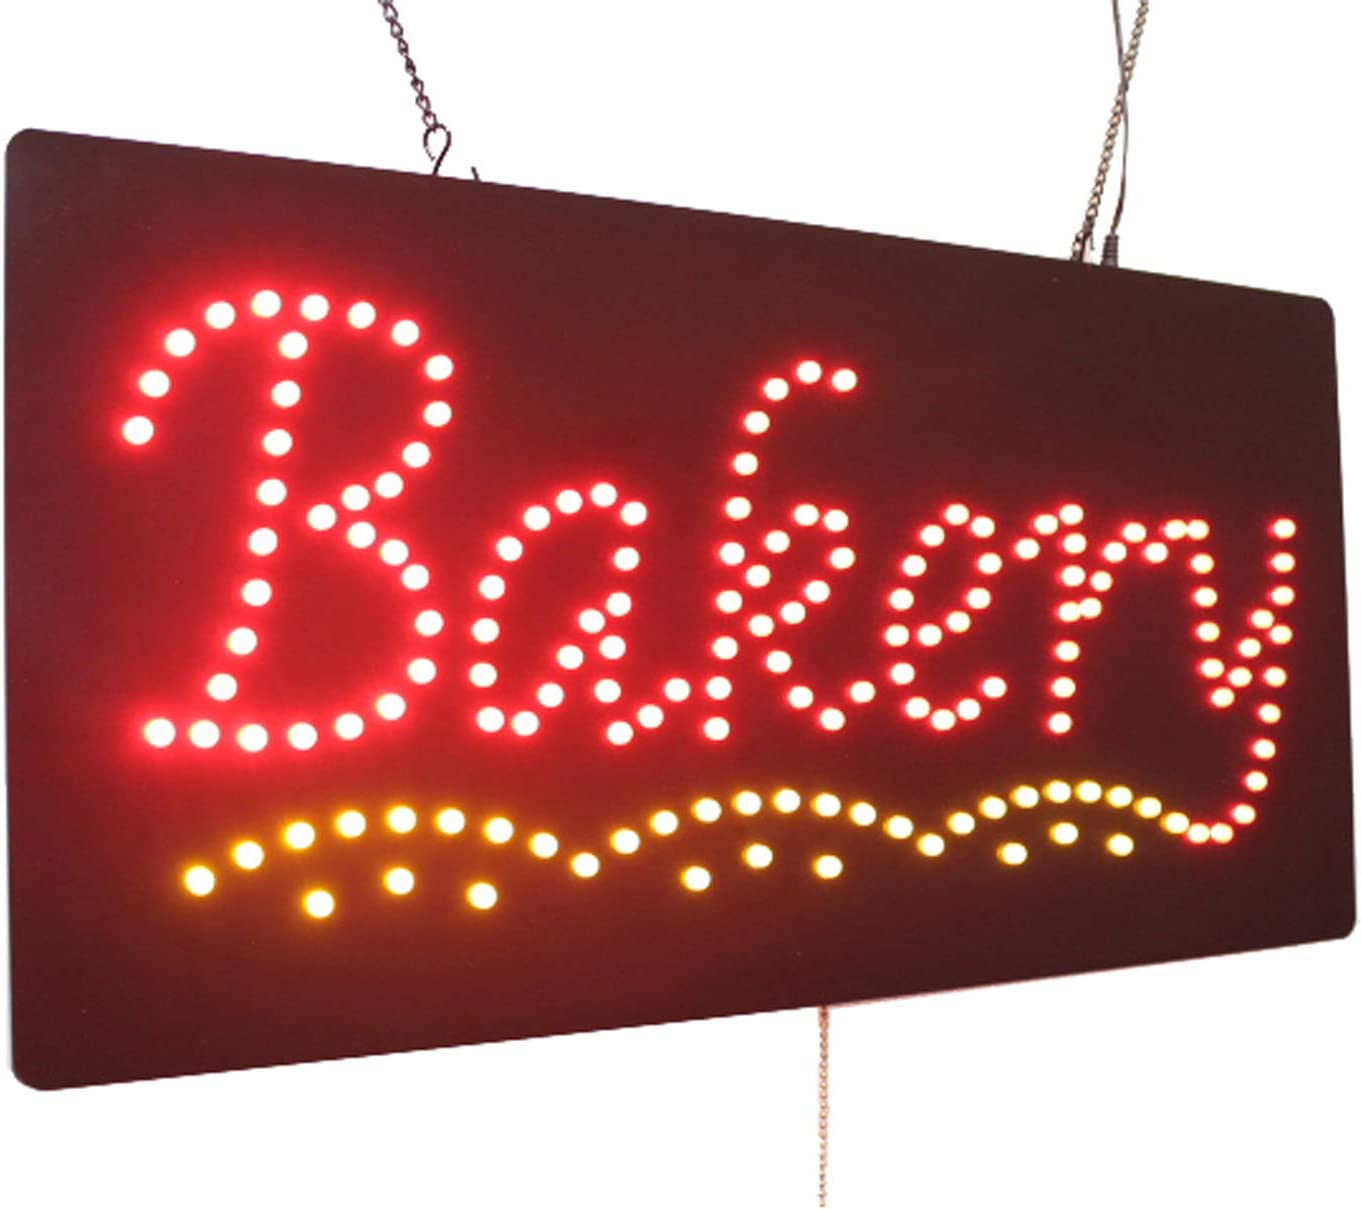 Bakery Sign, TOPKING Signage, LED Neon Open, Store, Window, Shop, Business, Display, Grand Opening Gift